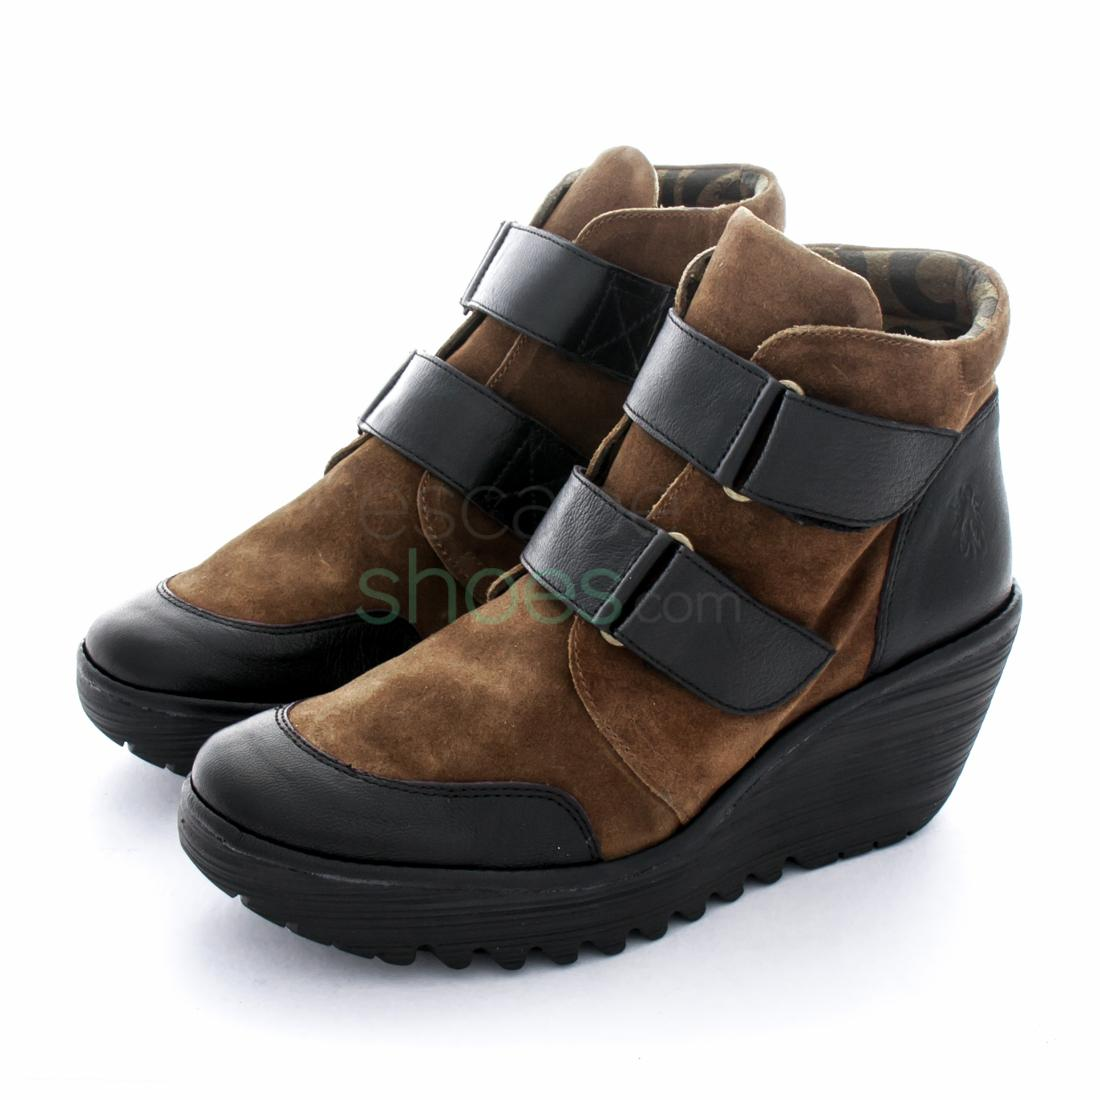 209f285c0cca8 Footwear / Ankle Boots · Botins FLY LONDON Yellow Yugo684 Black Camel  P500684012